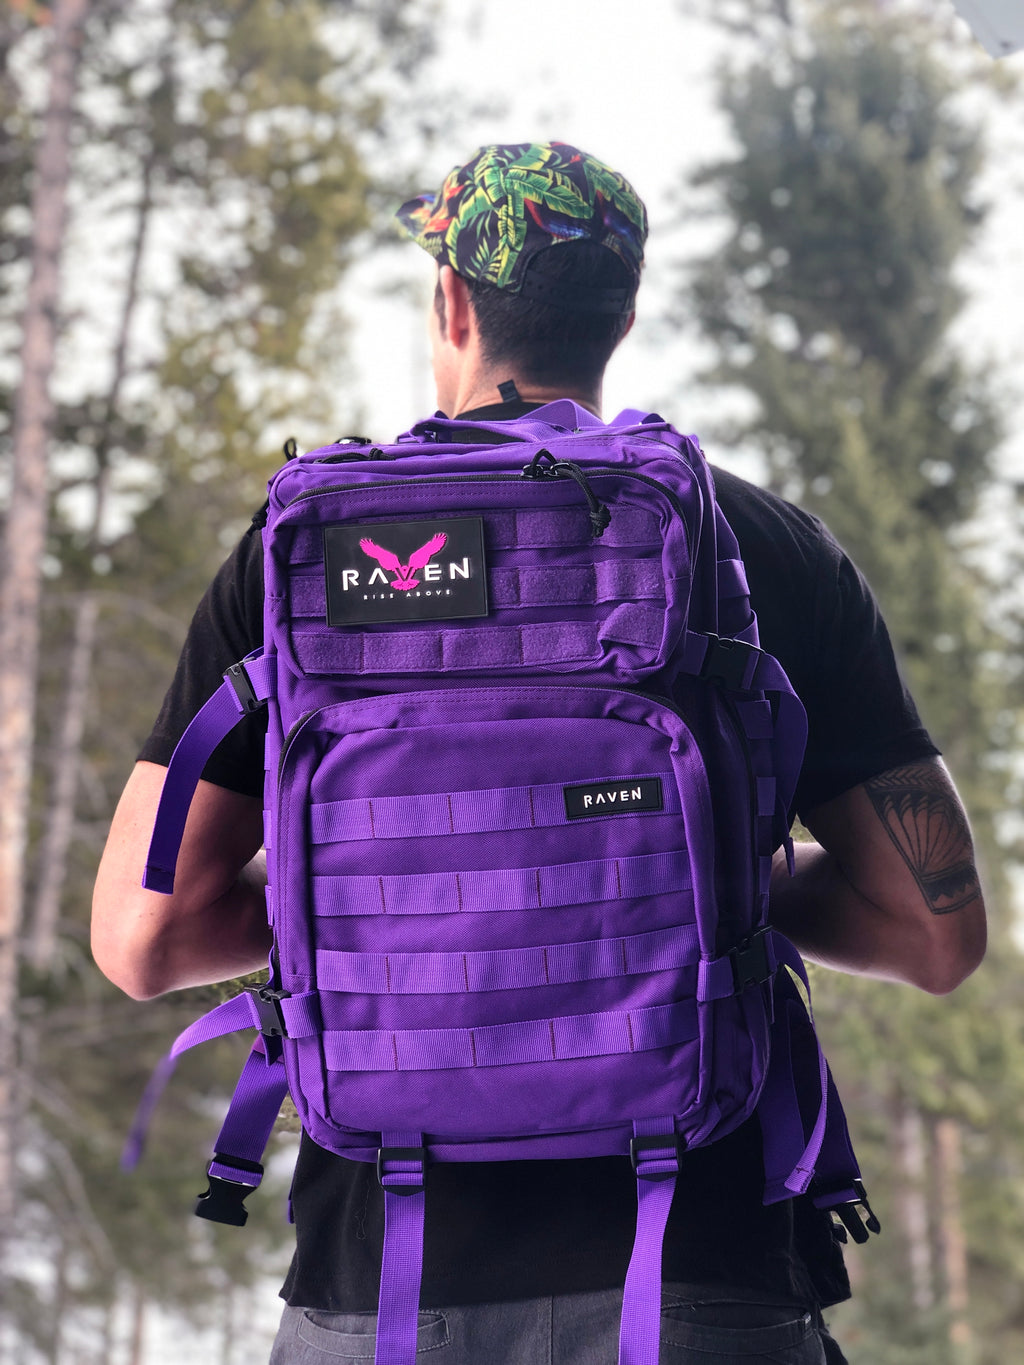 Purple and Black backpack